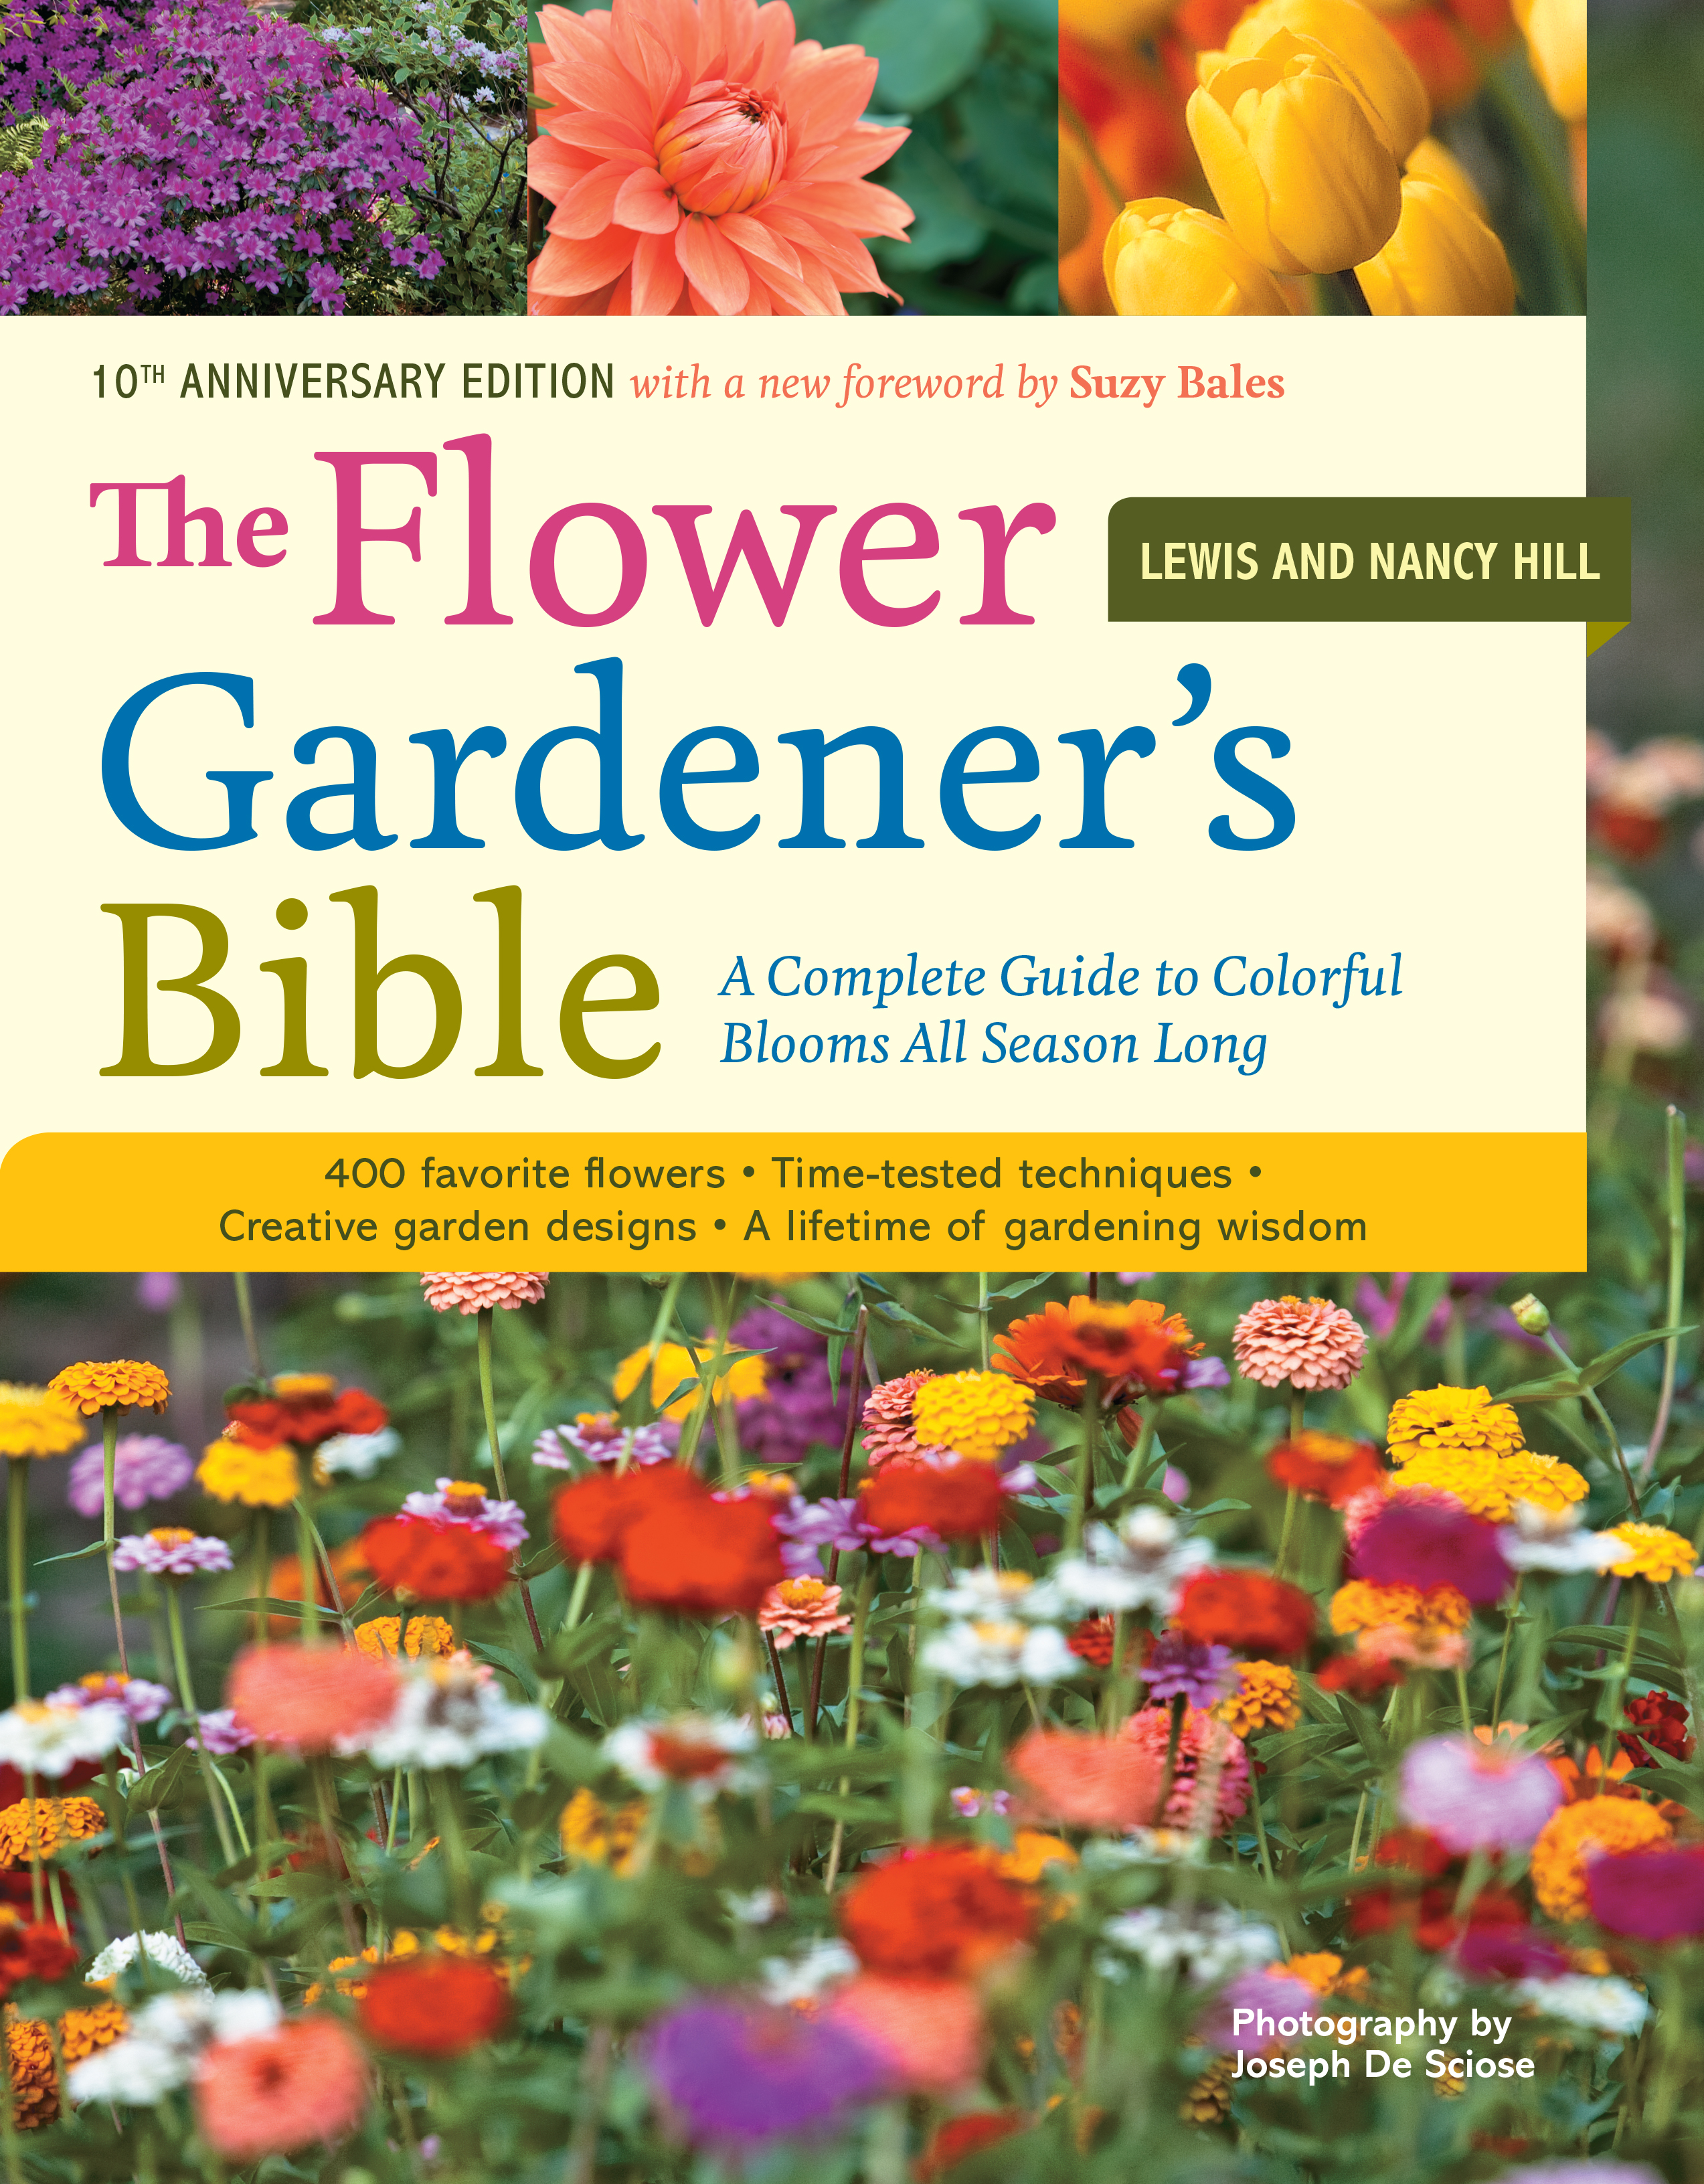 The Flower Gardener's Bible A Complete Guide to Colorful Blooms All Season Long: 400 Favorite Flowers, Time-Tested Techniques, Creative Garden Designs, and a Lifetime of Gardening Wisdom - Lewis Hill